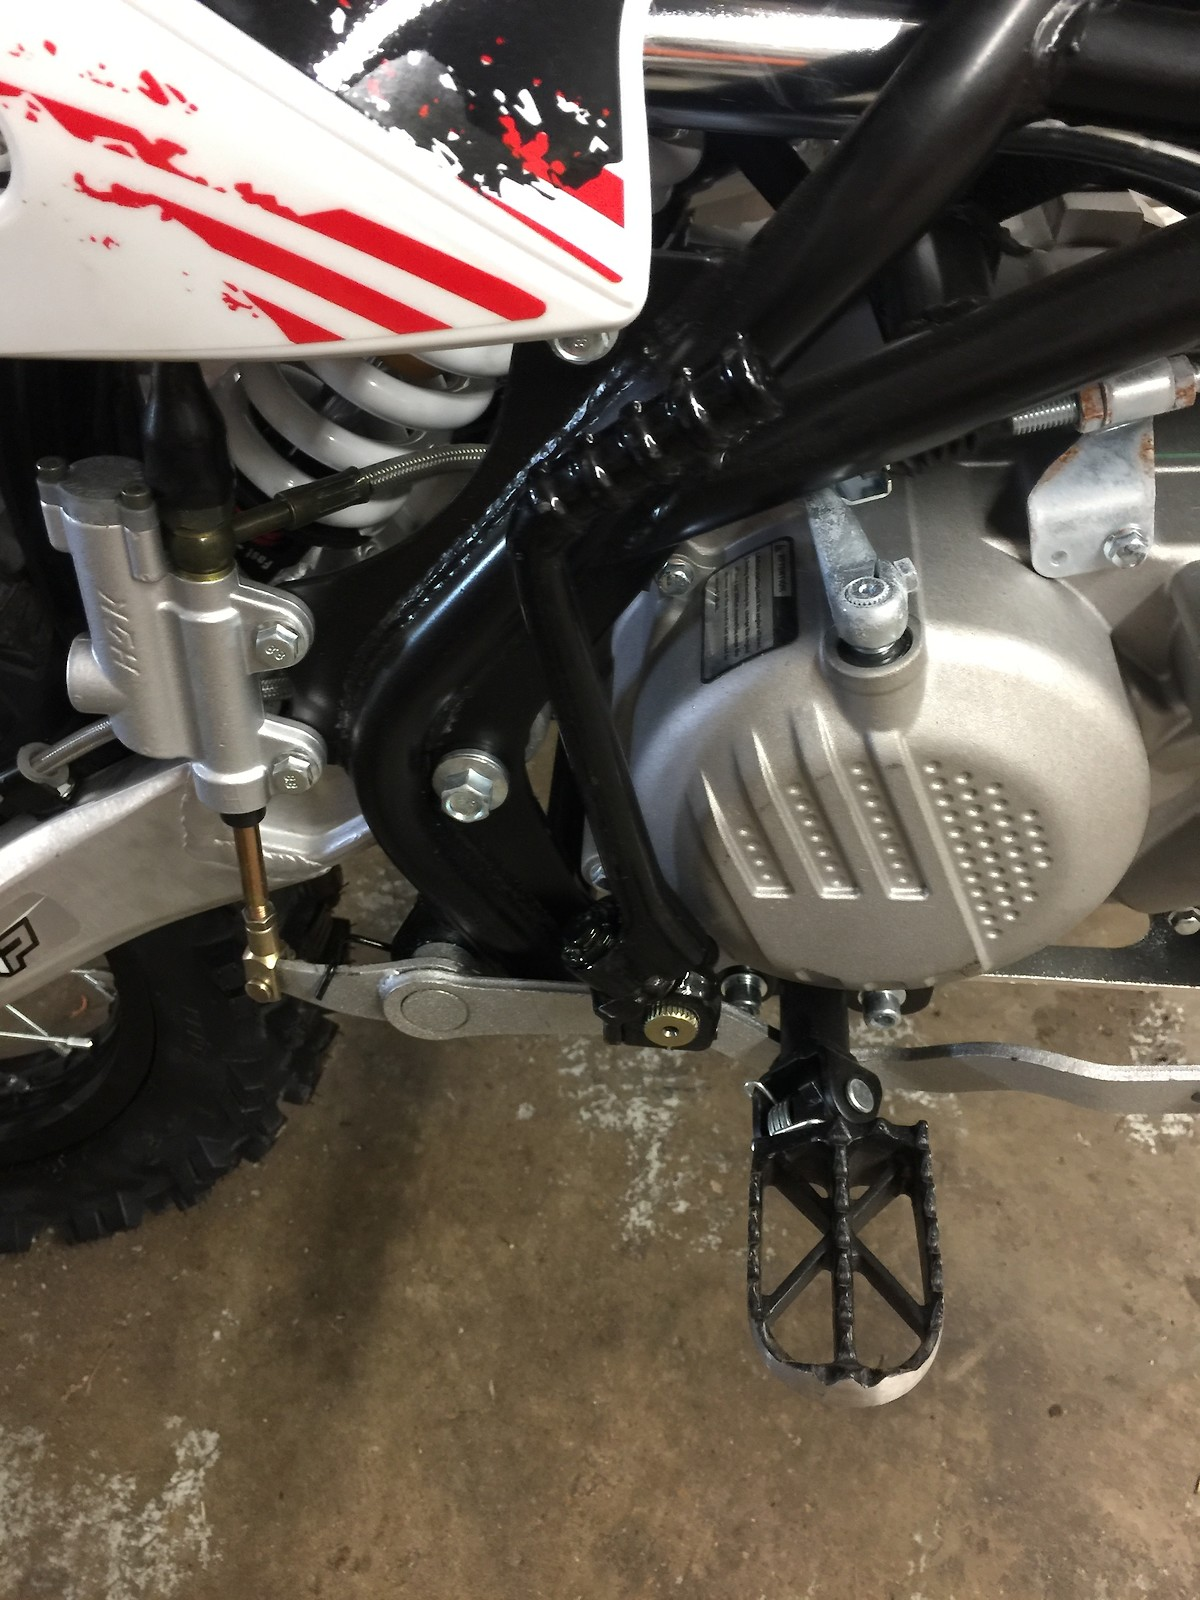 New To Pit Bikes 2018 Pitster Pro Lxr 190f Build Assembly Bike Ssr Wiring Diagram Find Latest Part This Kick Starter Tucks In Really Well